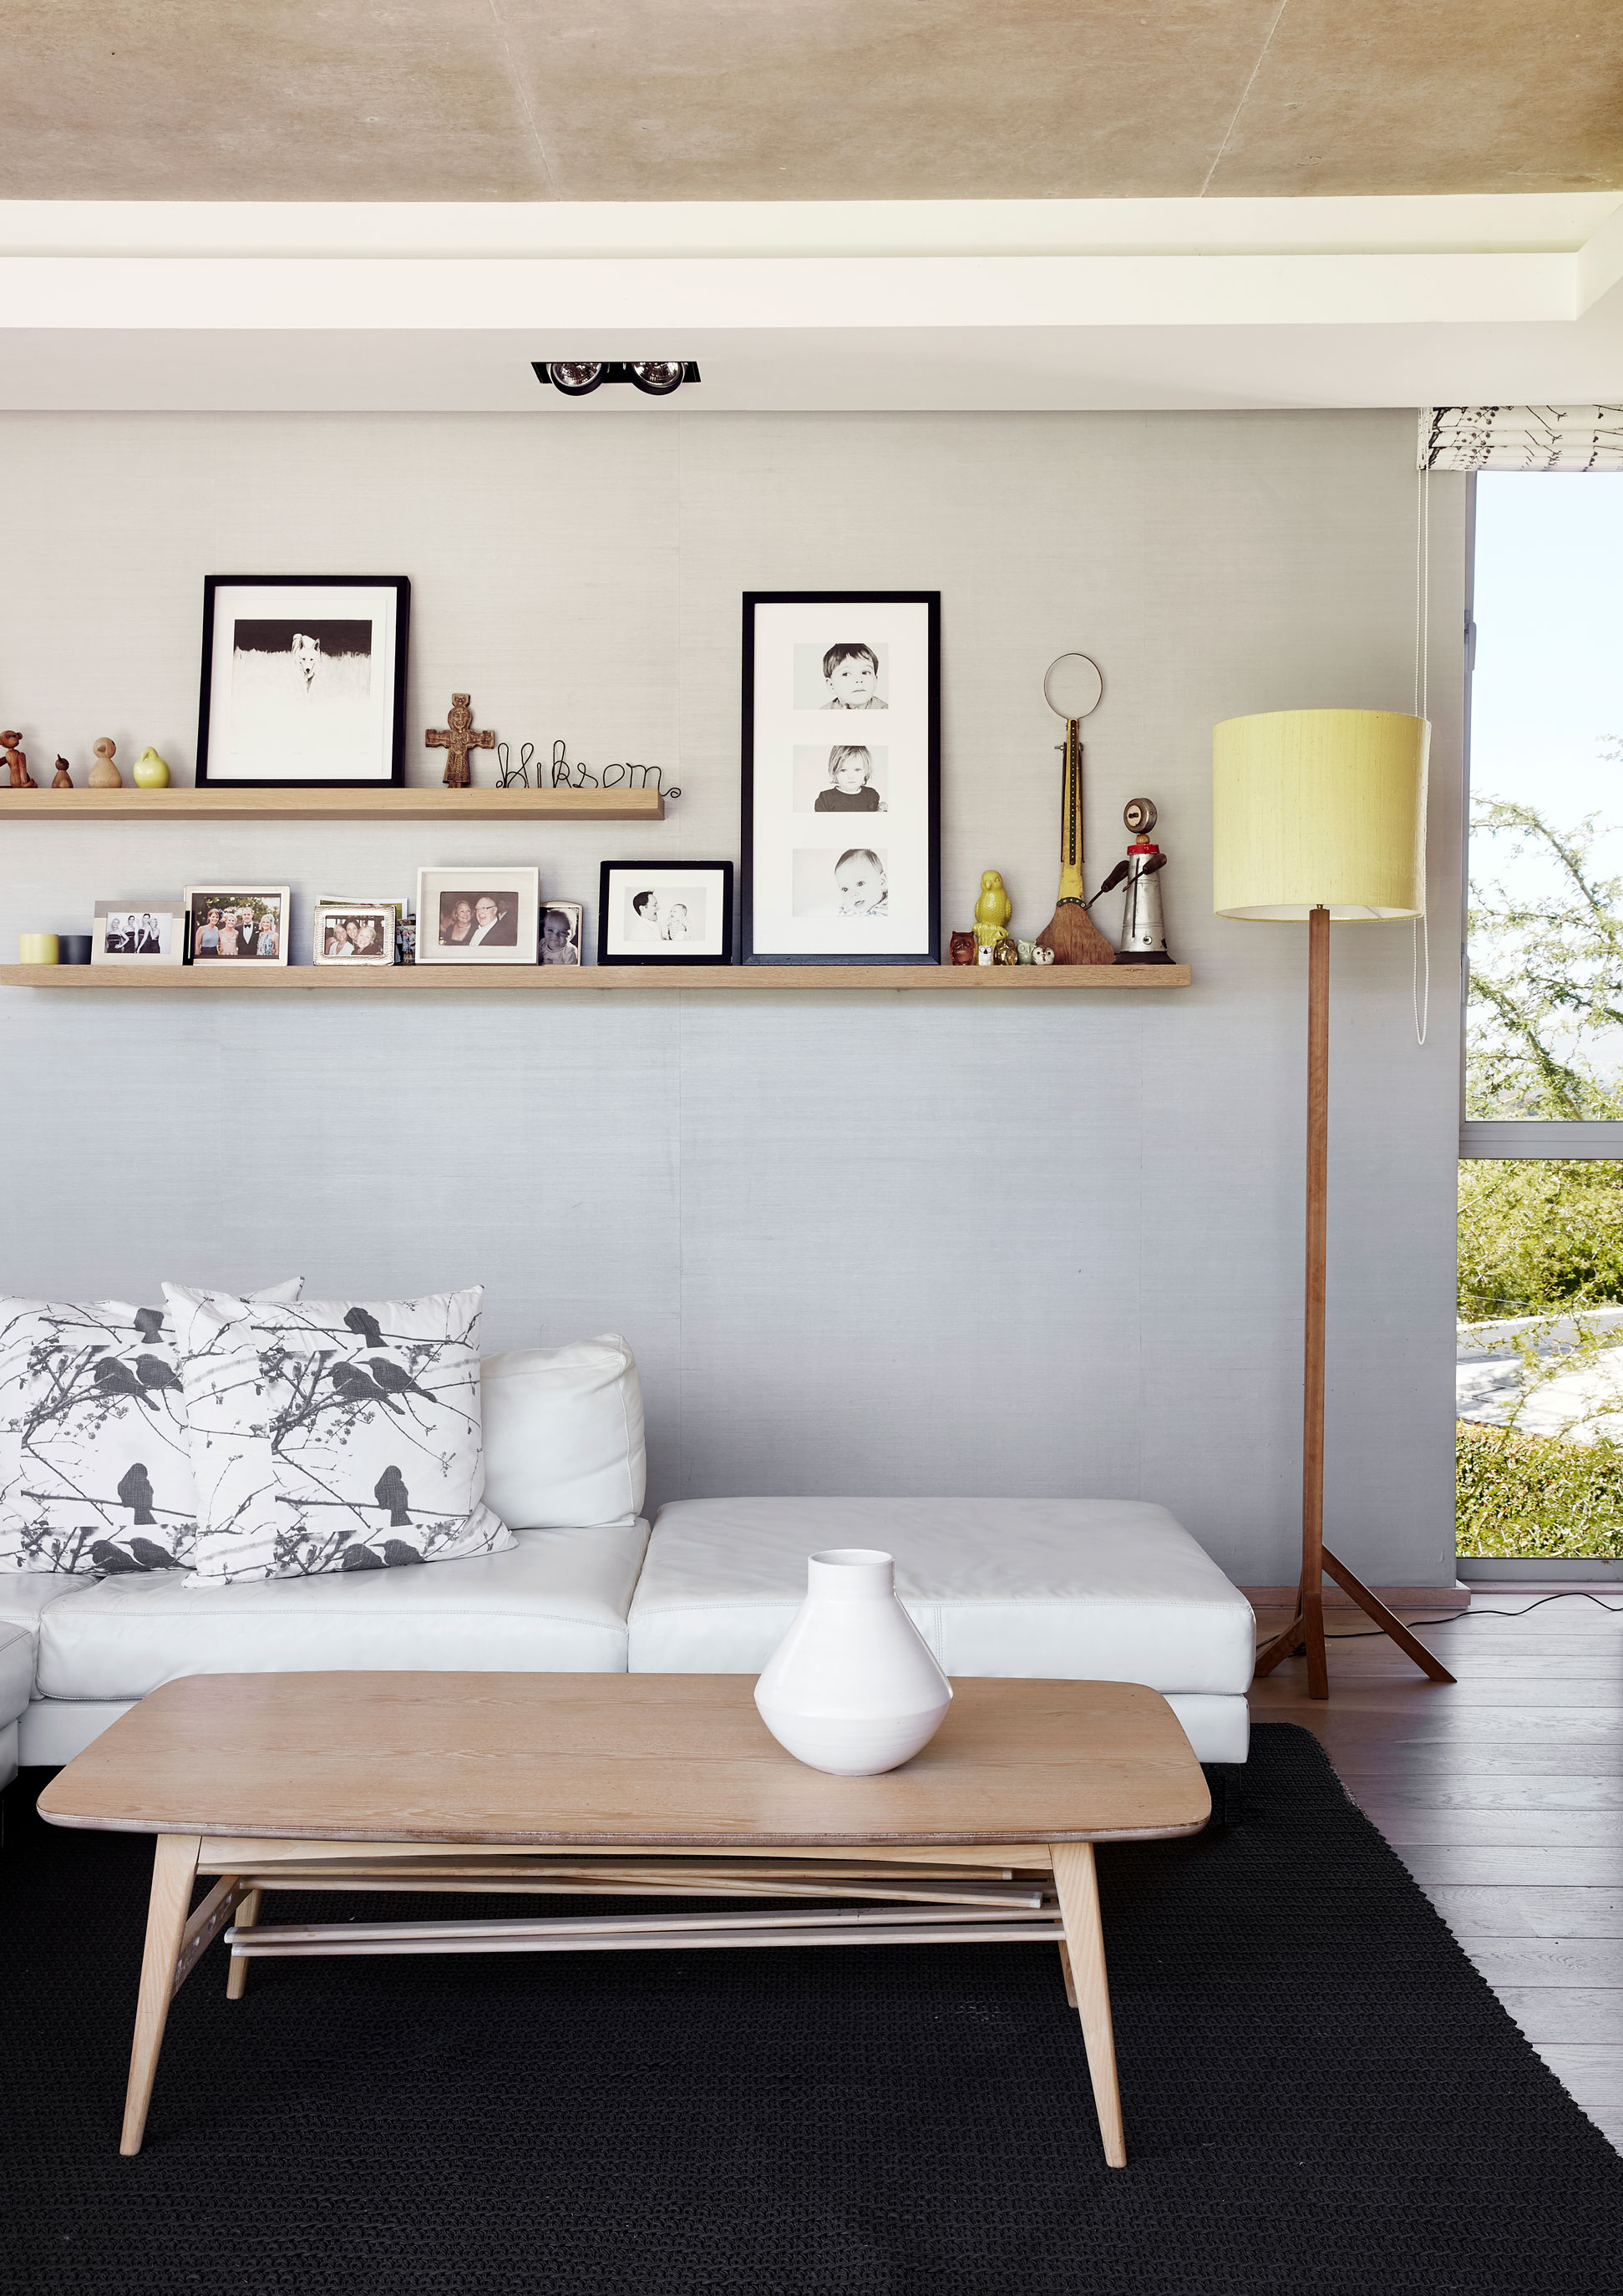 The white leather sofa from Klooftique was purchased before the house was built on the advice of Jan-Heyn, with an eye to how it might suit the house when complete. The vintage coffee table is from Space For Life. The Scandinavian mid-century wooden toys are design classics, and include Kristian Vedel!&s family of birds and Kay Bojesen!&s iconic monkey, which Matt!&s father has had since he was a child.